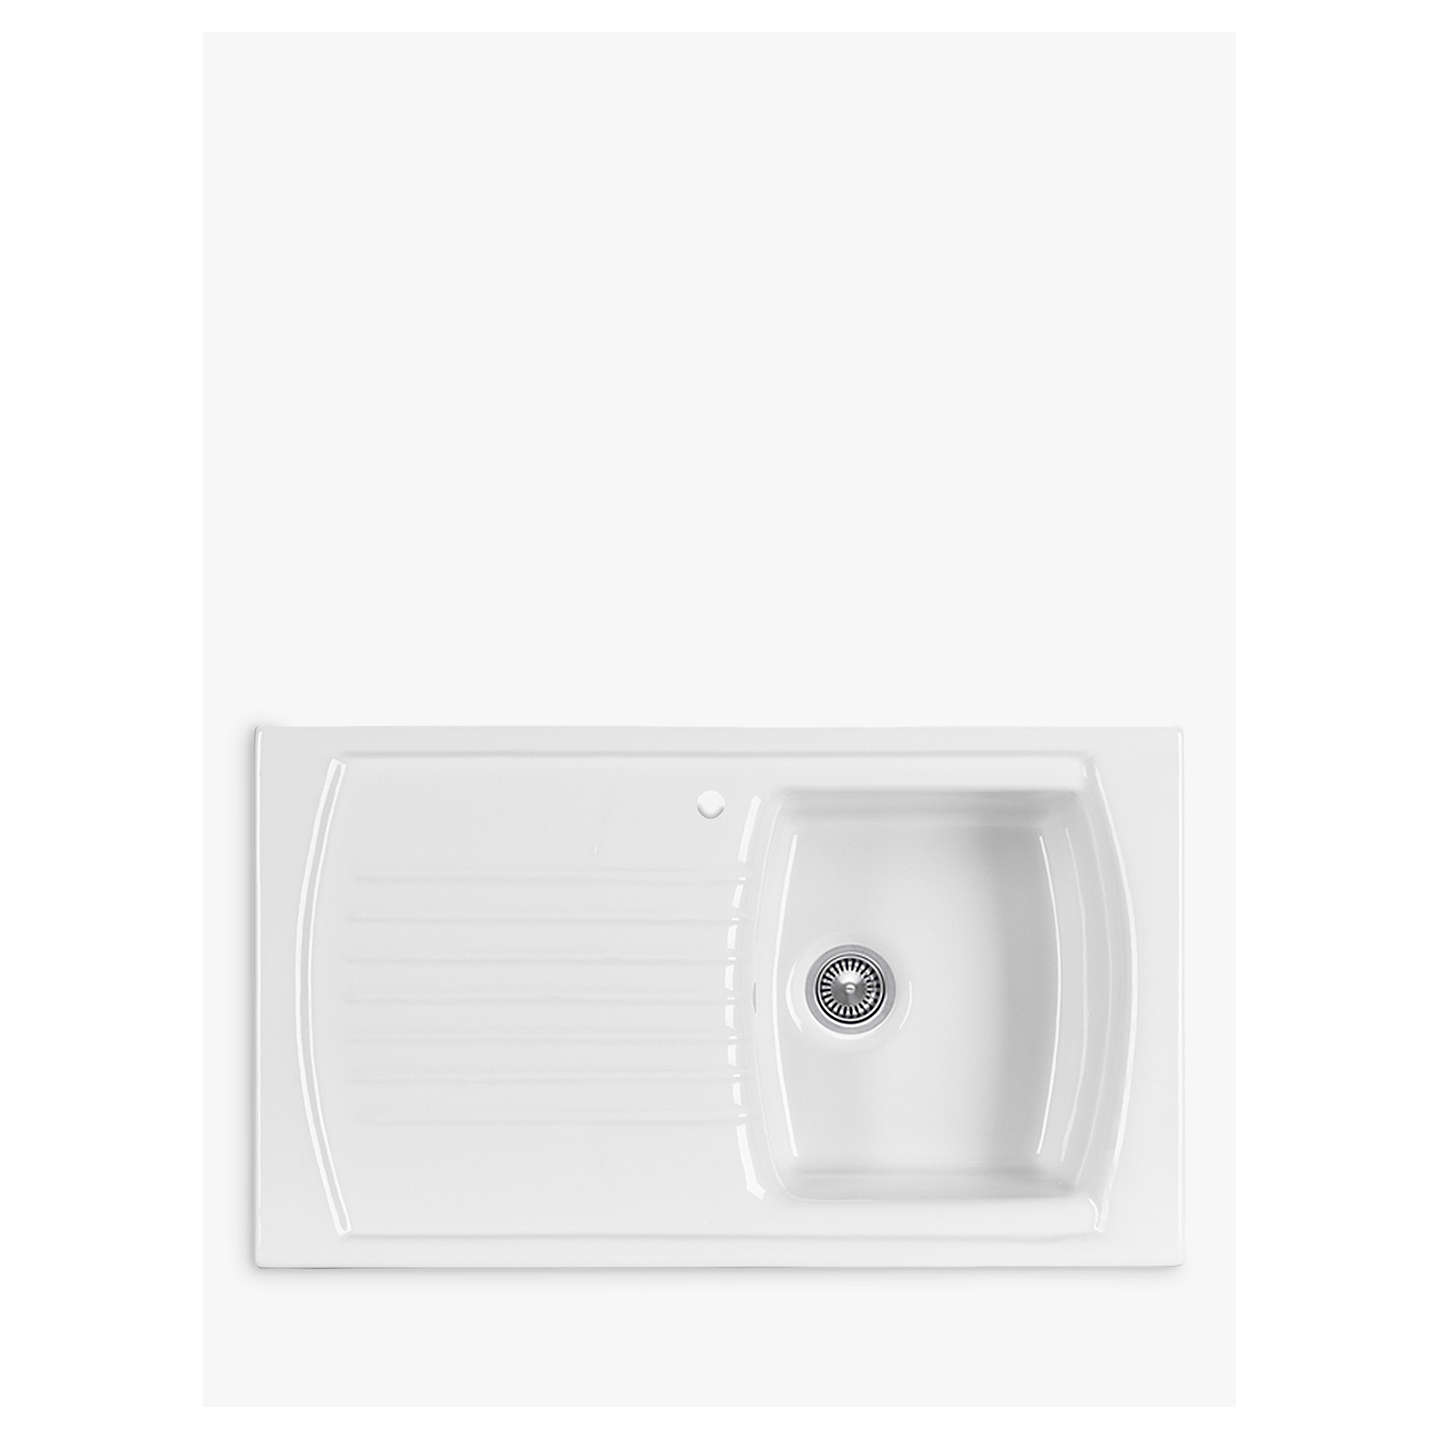 Clearwater sonnet inset single bowl ceramic kitchen sink white at buyclearwater sonnet inset single bowl ceramic kitchen sink white online at johnlewis workwithnaturefo